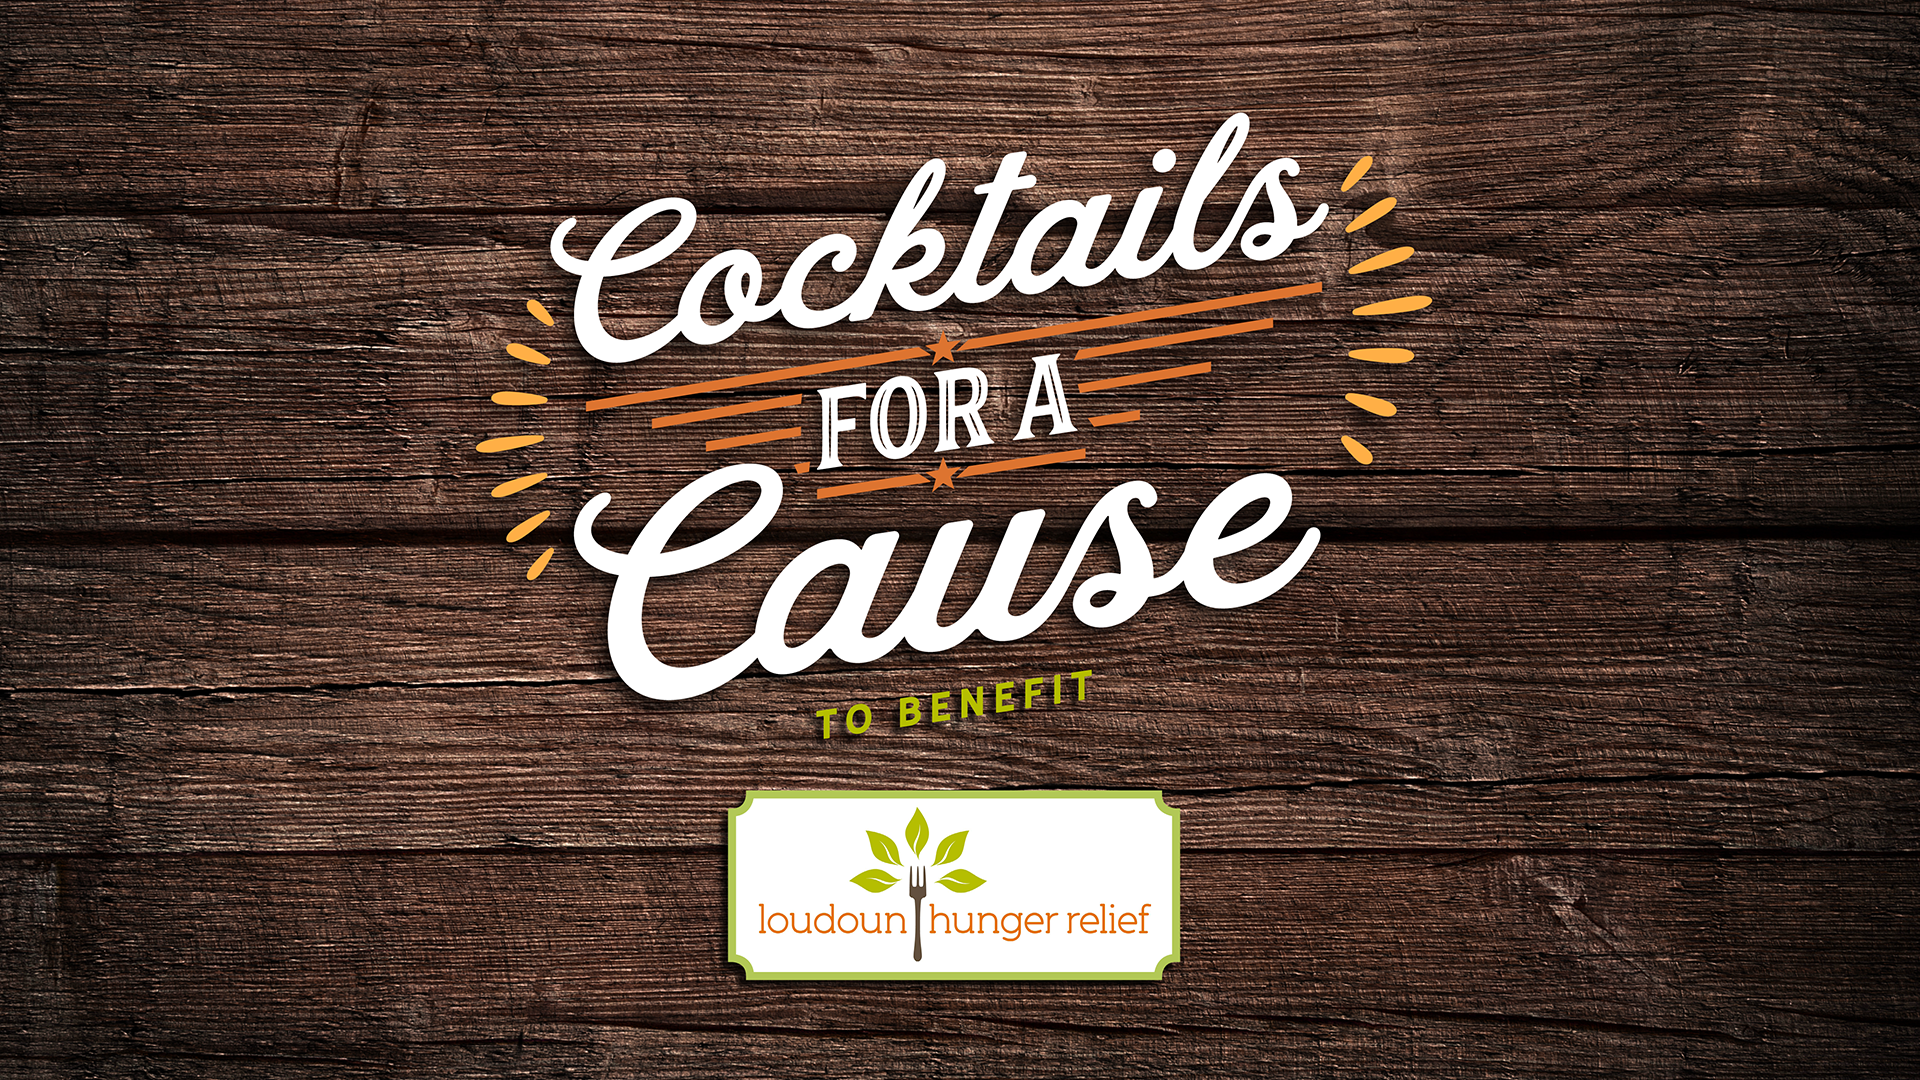 Cocktails for a Cause Event Raises $7,000 for Loudoun Hunger Relief